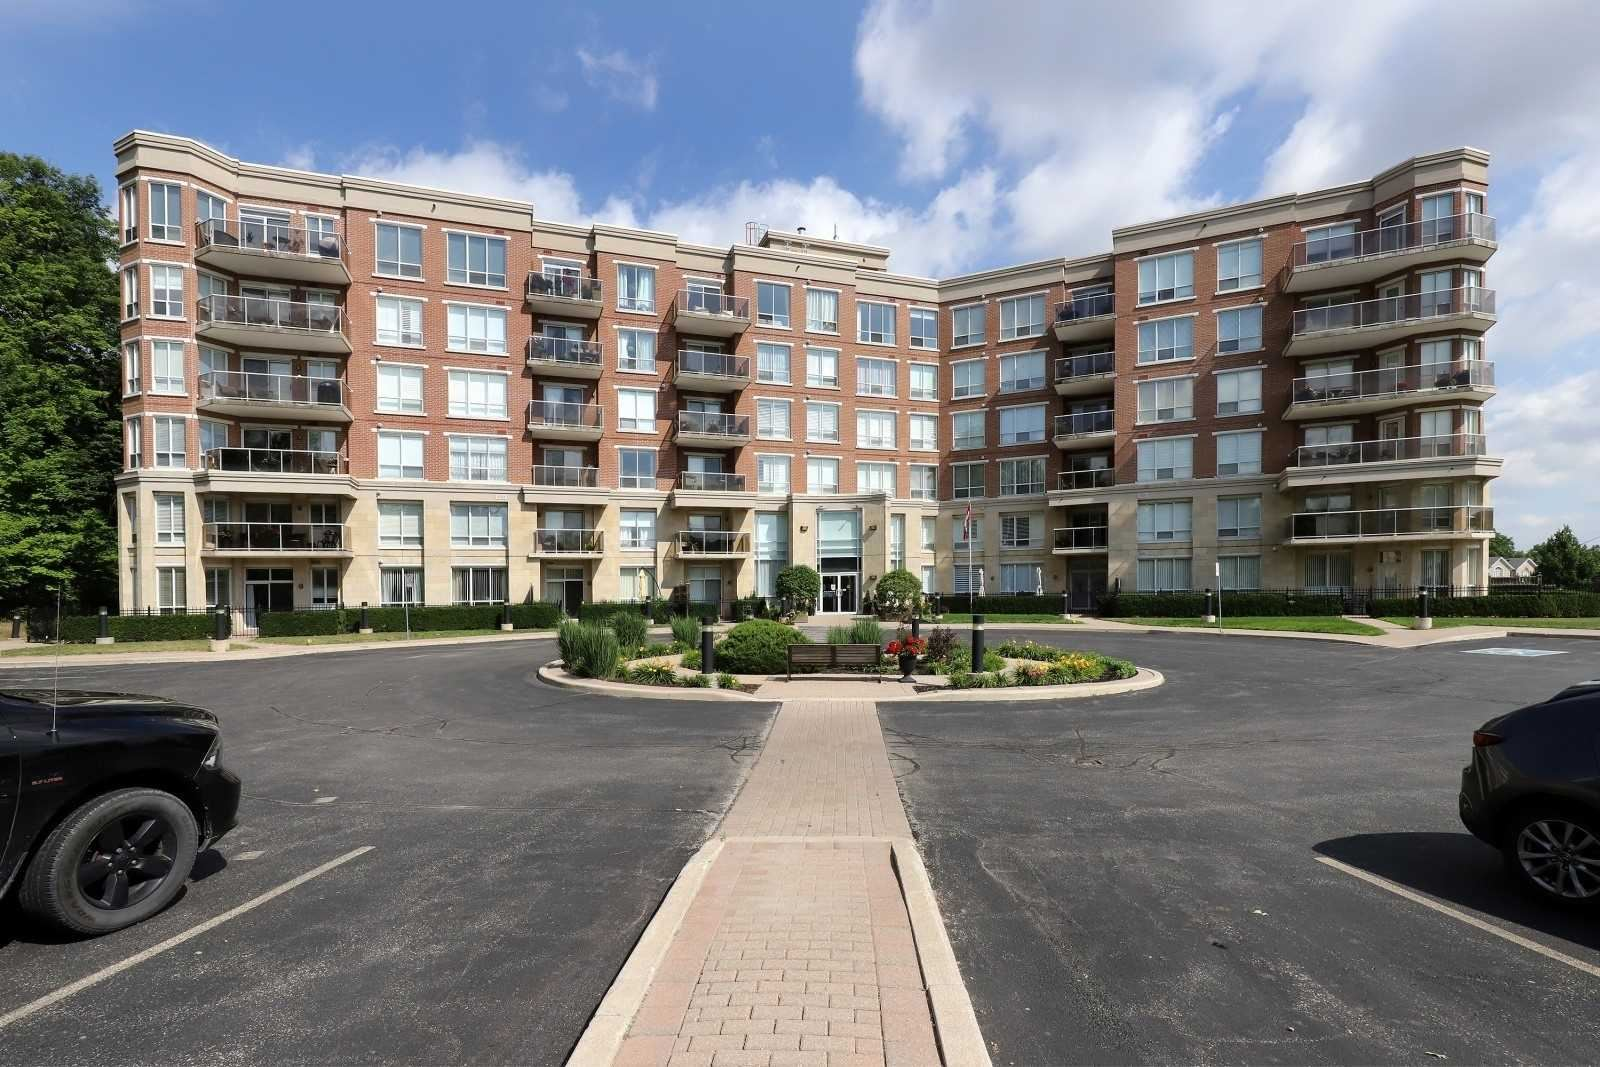 483 Faith Dr #302, Mississauga, ON L5R0A1 - MLS#: W5290876